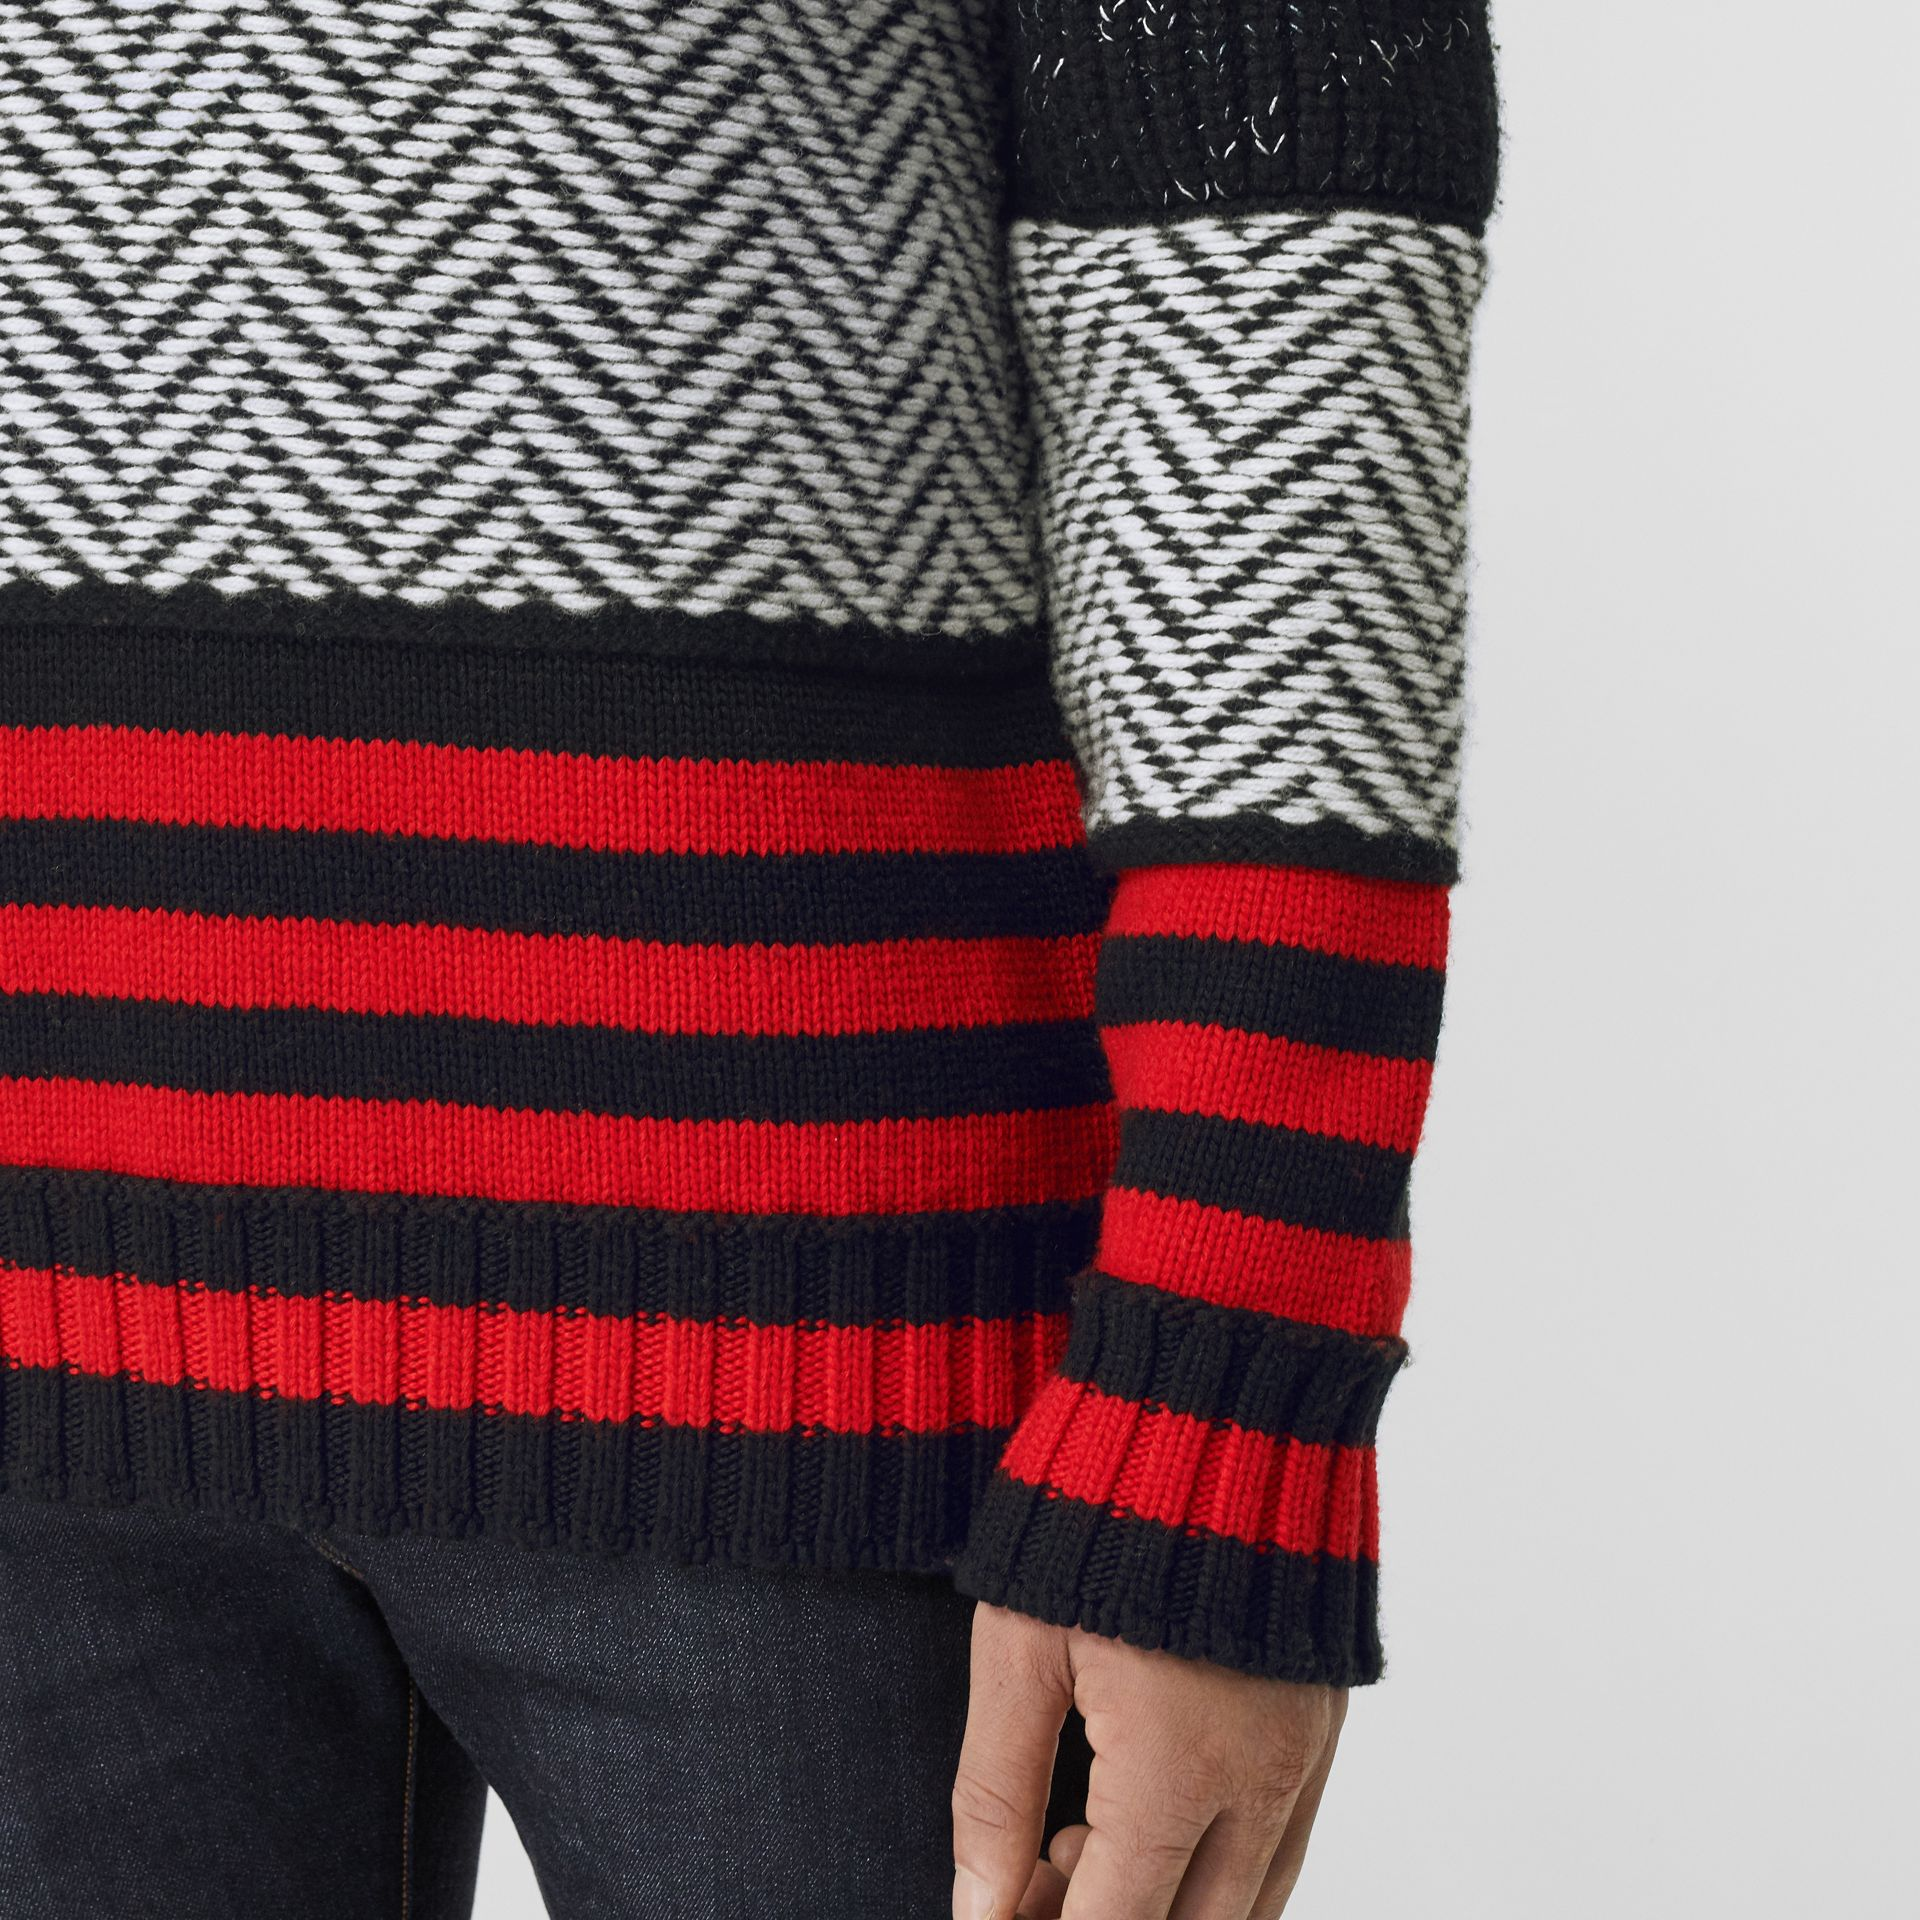 Contrast Knit Wool Cashmere Blend Sweater in Black - Men | Burberry - gallery image 4